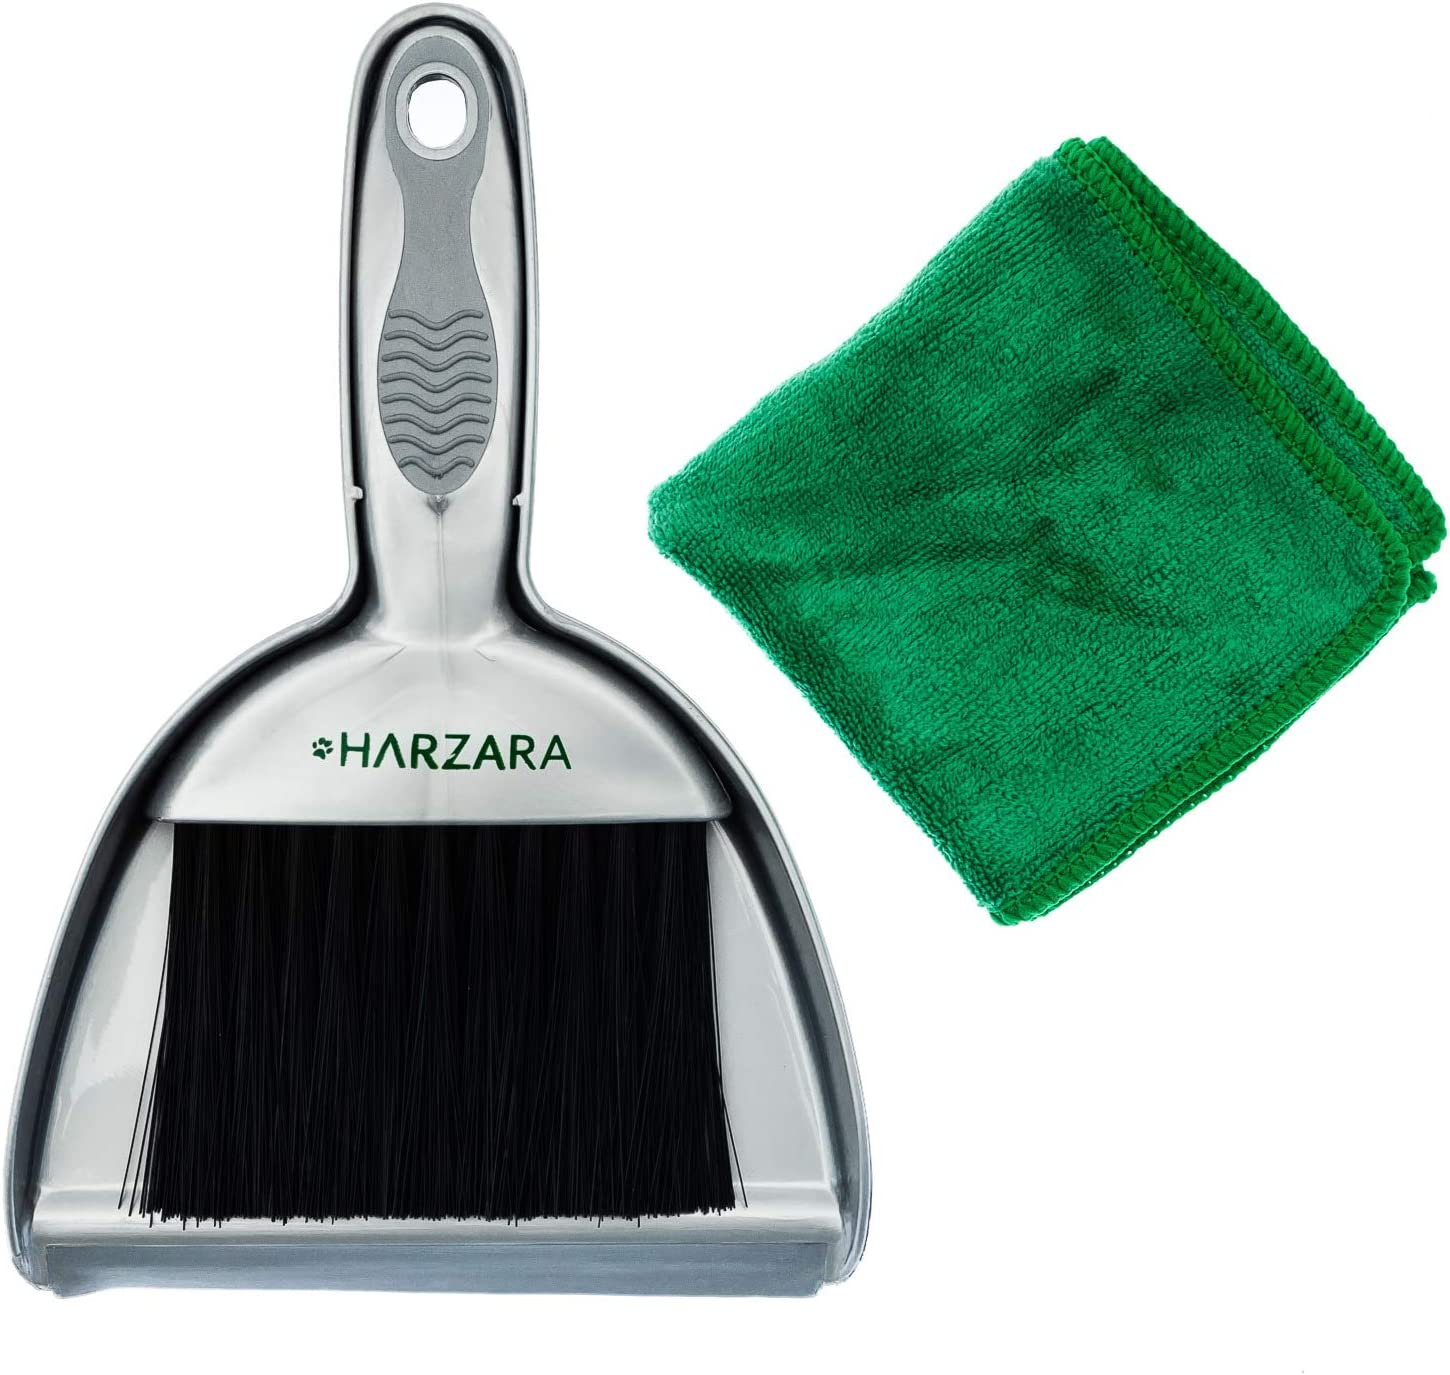 Harzara Mini Dustpan & Brush Set. Use for Pet Cage Cleaning of Small Animals. Also Ideal for The Home & Kitchen. Best for Floor, Small Bench Spills & Keyboards. Great Space Saving Tool.